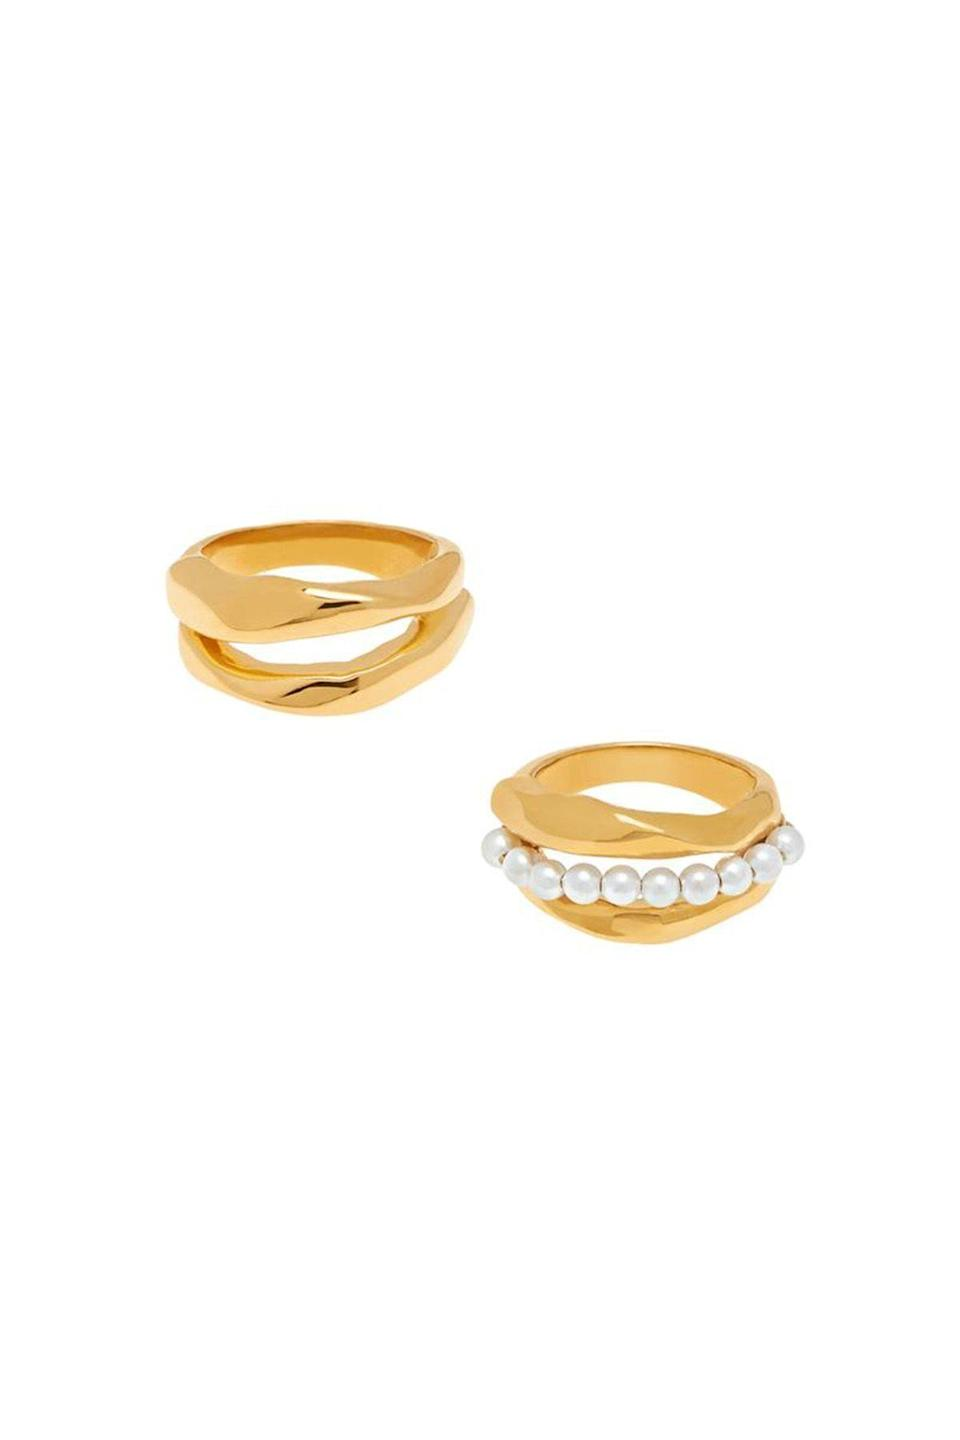 """<p><strong>MISHO</strong></p><p>mishodesigns.com</p><p><strong>$118.71</strong></p><p><a href=""""https://www.mishodesigns.com/collections/rings-1/products/bora-bora-stack-rings?variant=33717736734808"""" rel=""""nofollow noopener"""" target=""""_blank"""" data-ylk=""""slk:Shop Now"""" class=""""link rapid-noclick-resp"""">Shop Now</a></p><p>The only thing better than one pearl ring is stacking multiples of them. These Bora Bora rings are based on the Polynesian myth that pearls are created as the moon bathes the ocean in its light. </p>"""